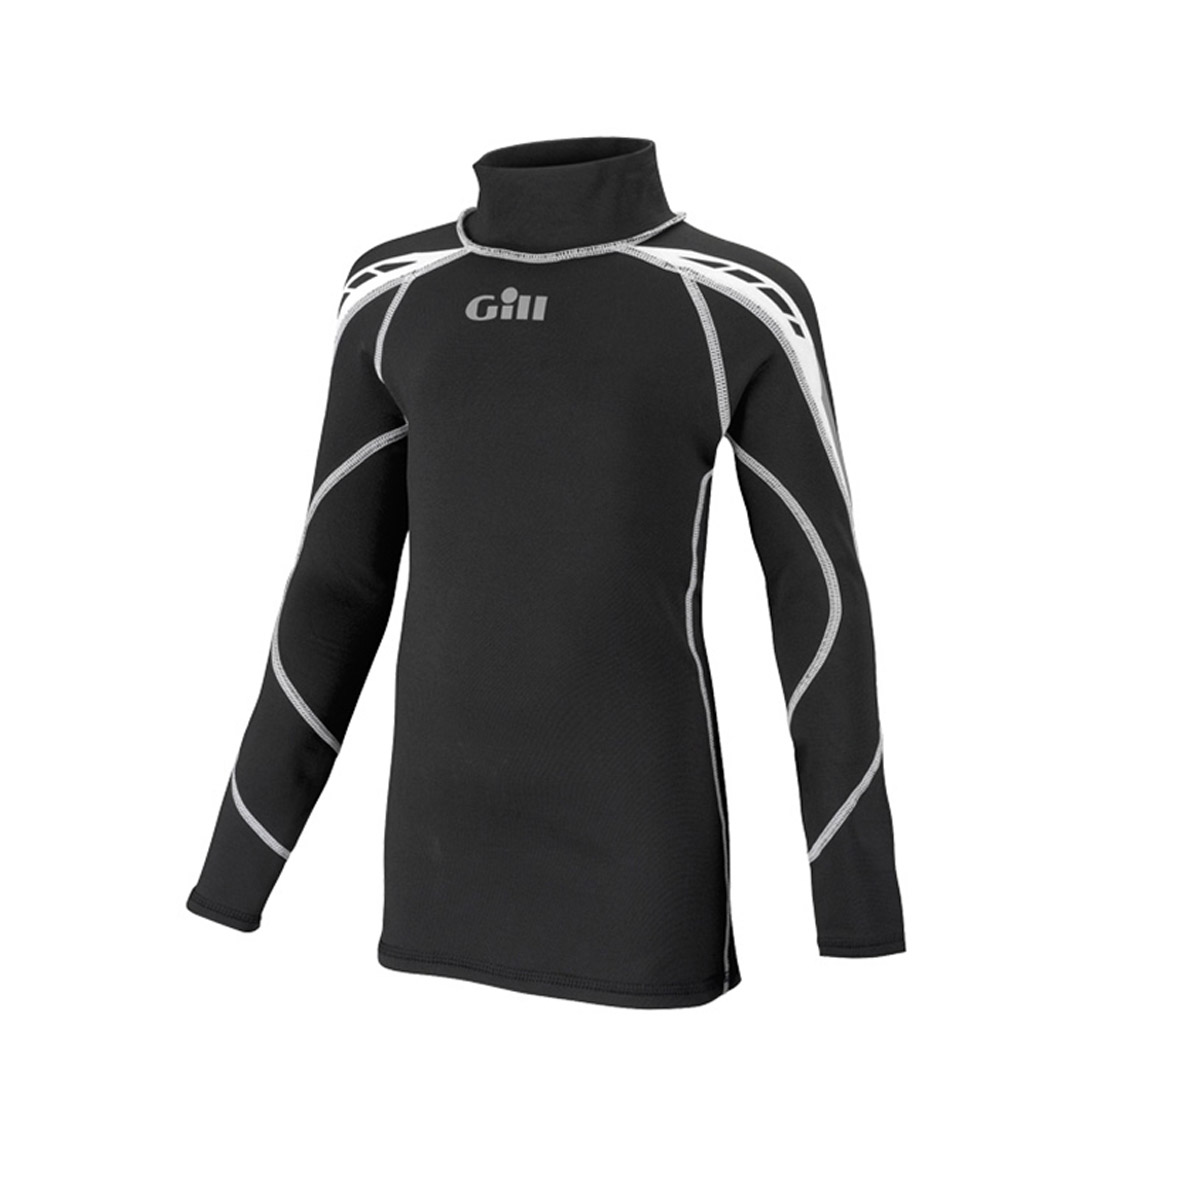 GILL JUNIOR HYDROPHOBE LONG SLEEVE TOP (4521J)